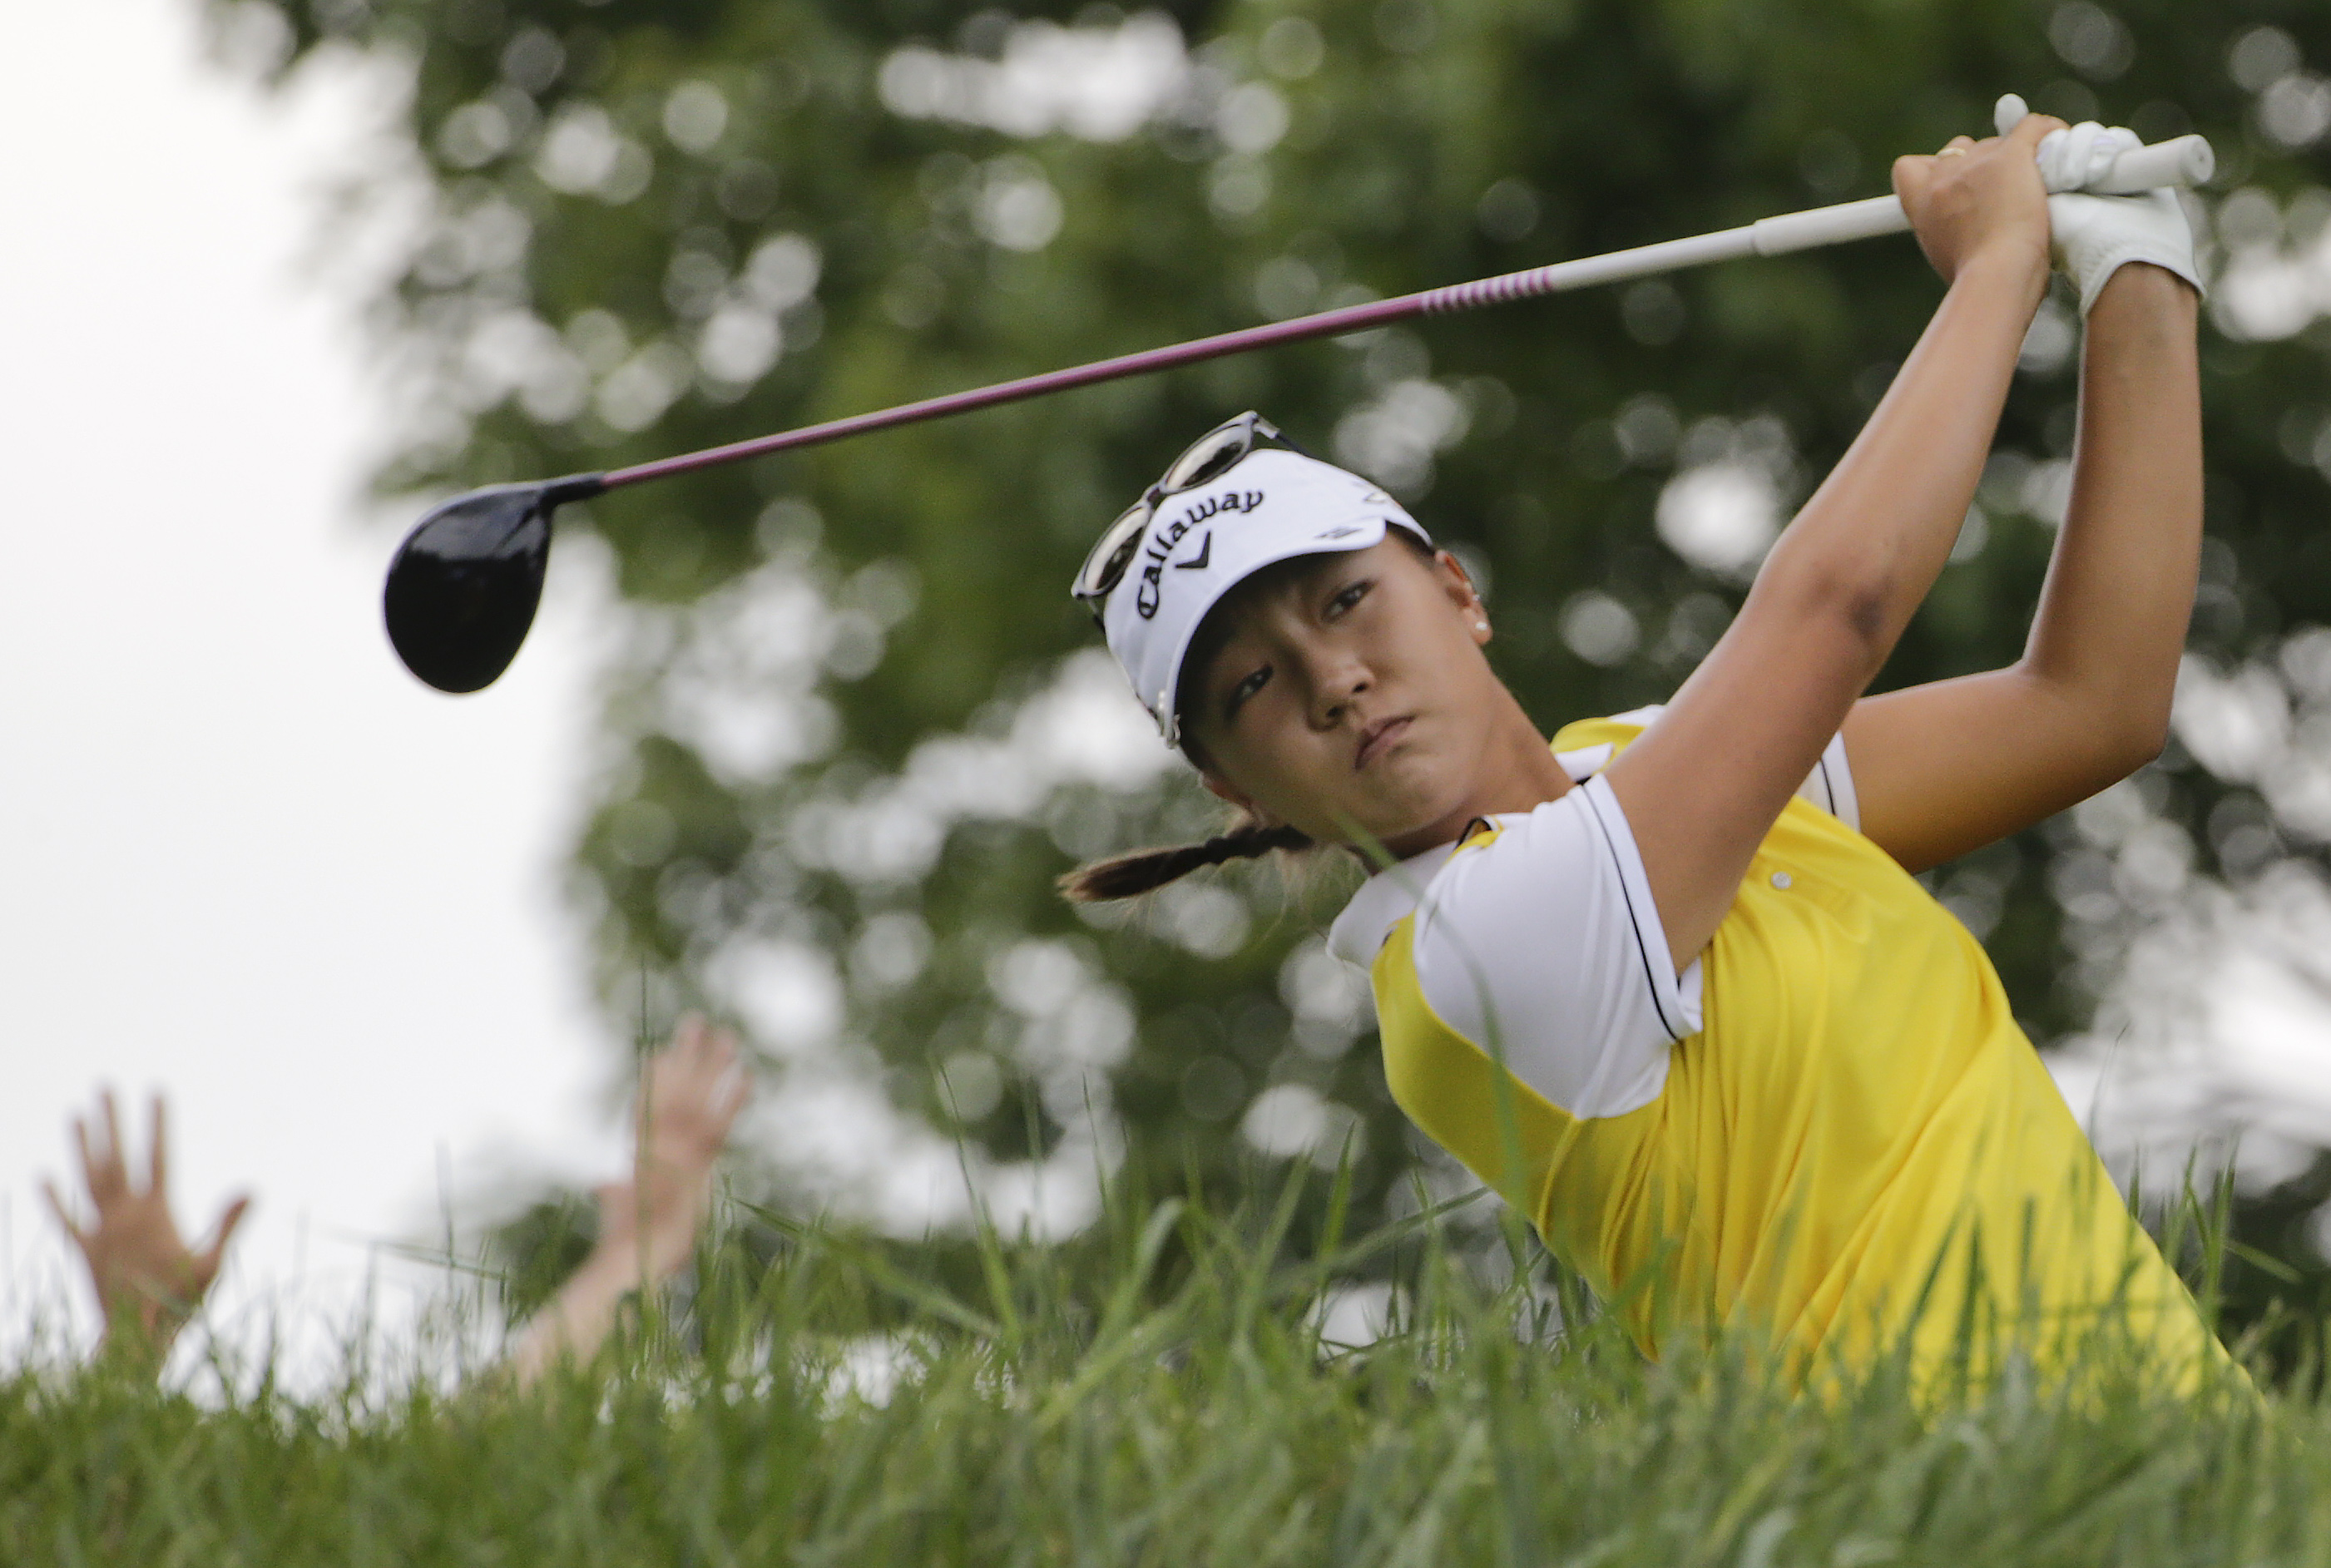 Lydia Ko tees off on the third hole during the final round of the U.S. Women's Open golf tournament at Lancaster Country Club, Sunday, July 12, 2015 in Lancaster, Pa. (AP Photo/Frank Franklin II)